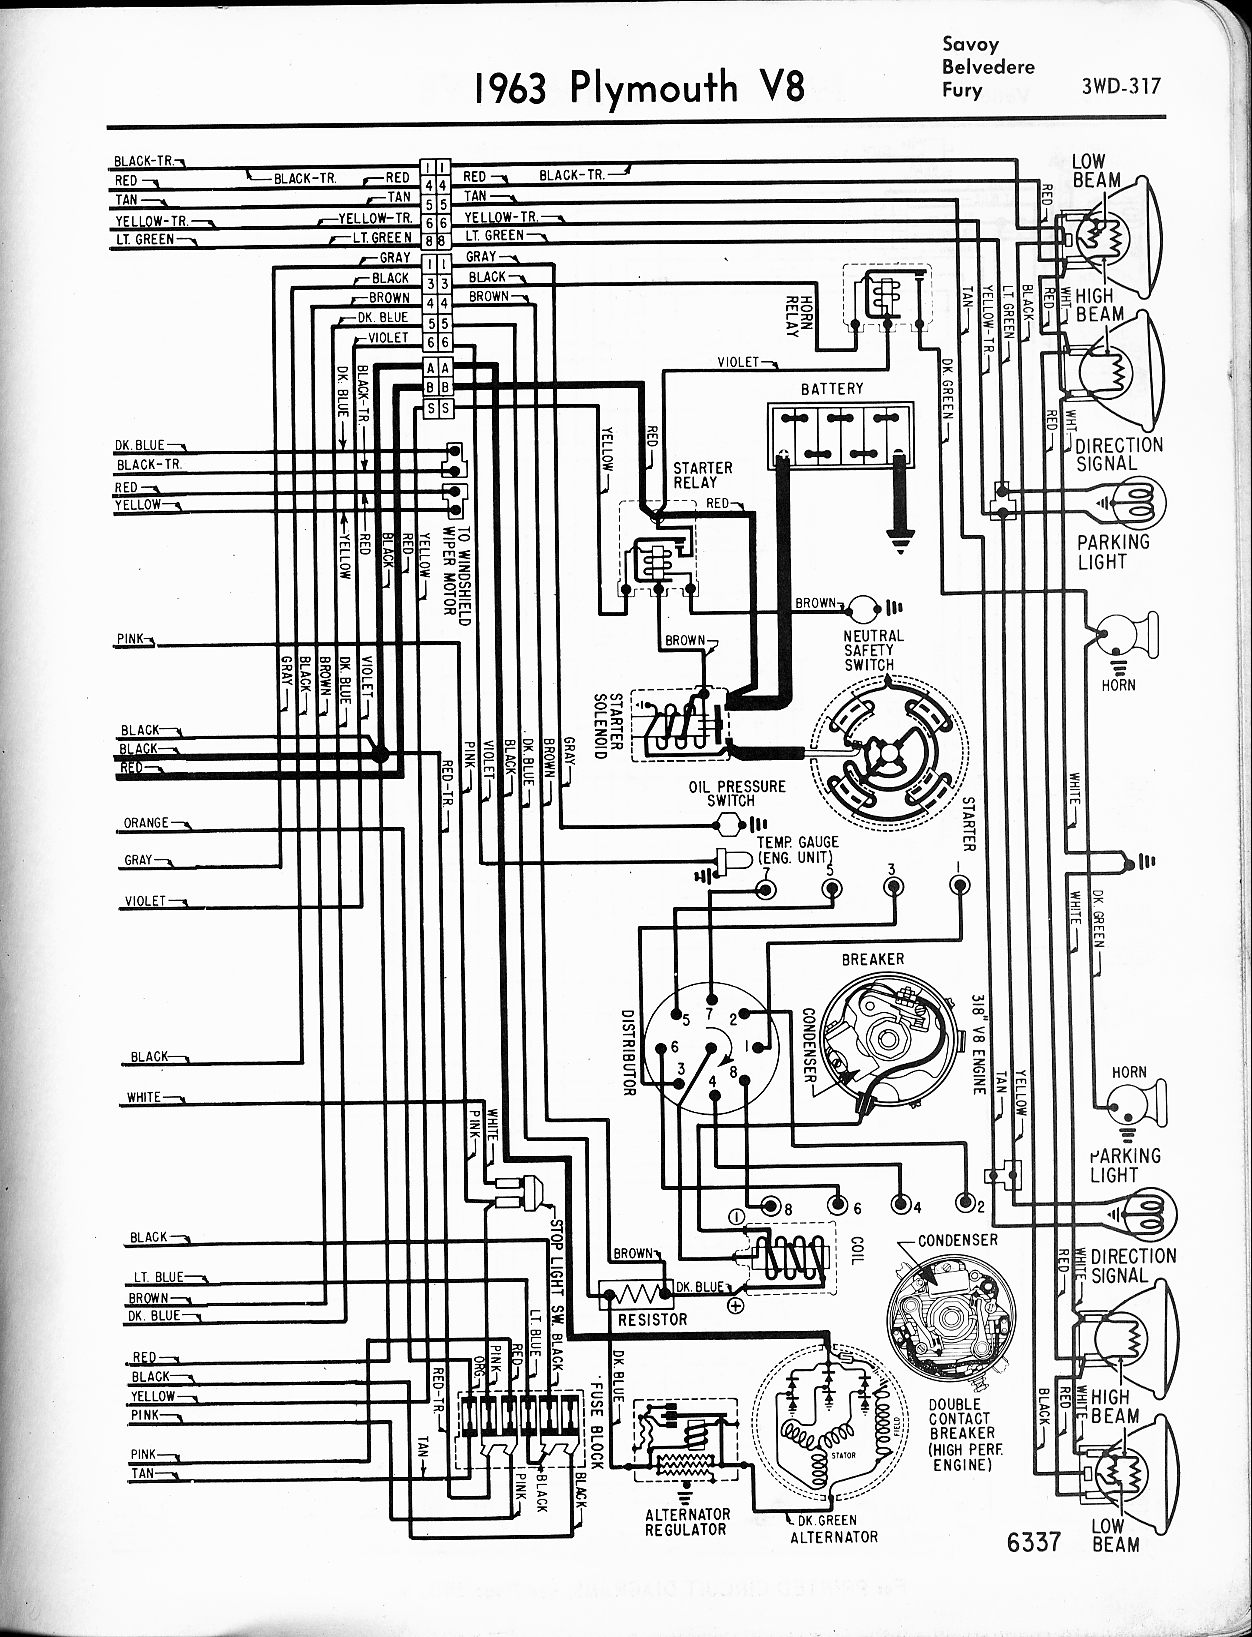 1968 Plymouth Wiring Diagram Content Resource Of Wiring Diagram \u2022 GMC  Fuse Box Diagrams 68 Valiant Wiring Diagram